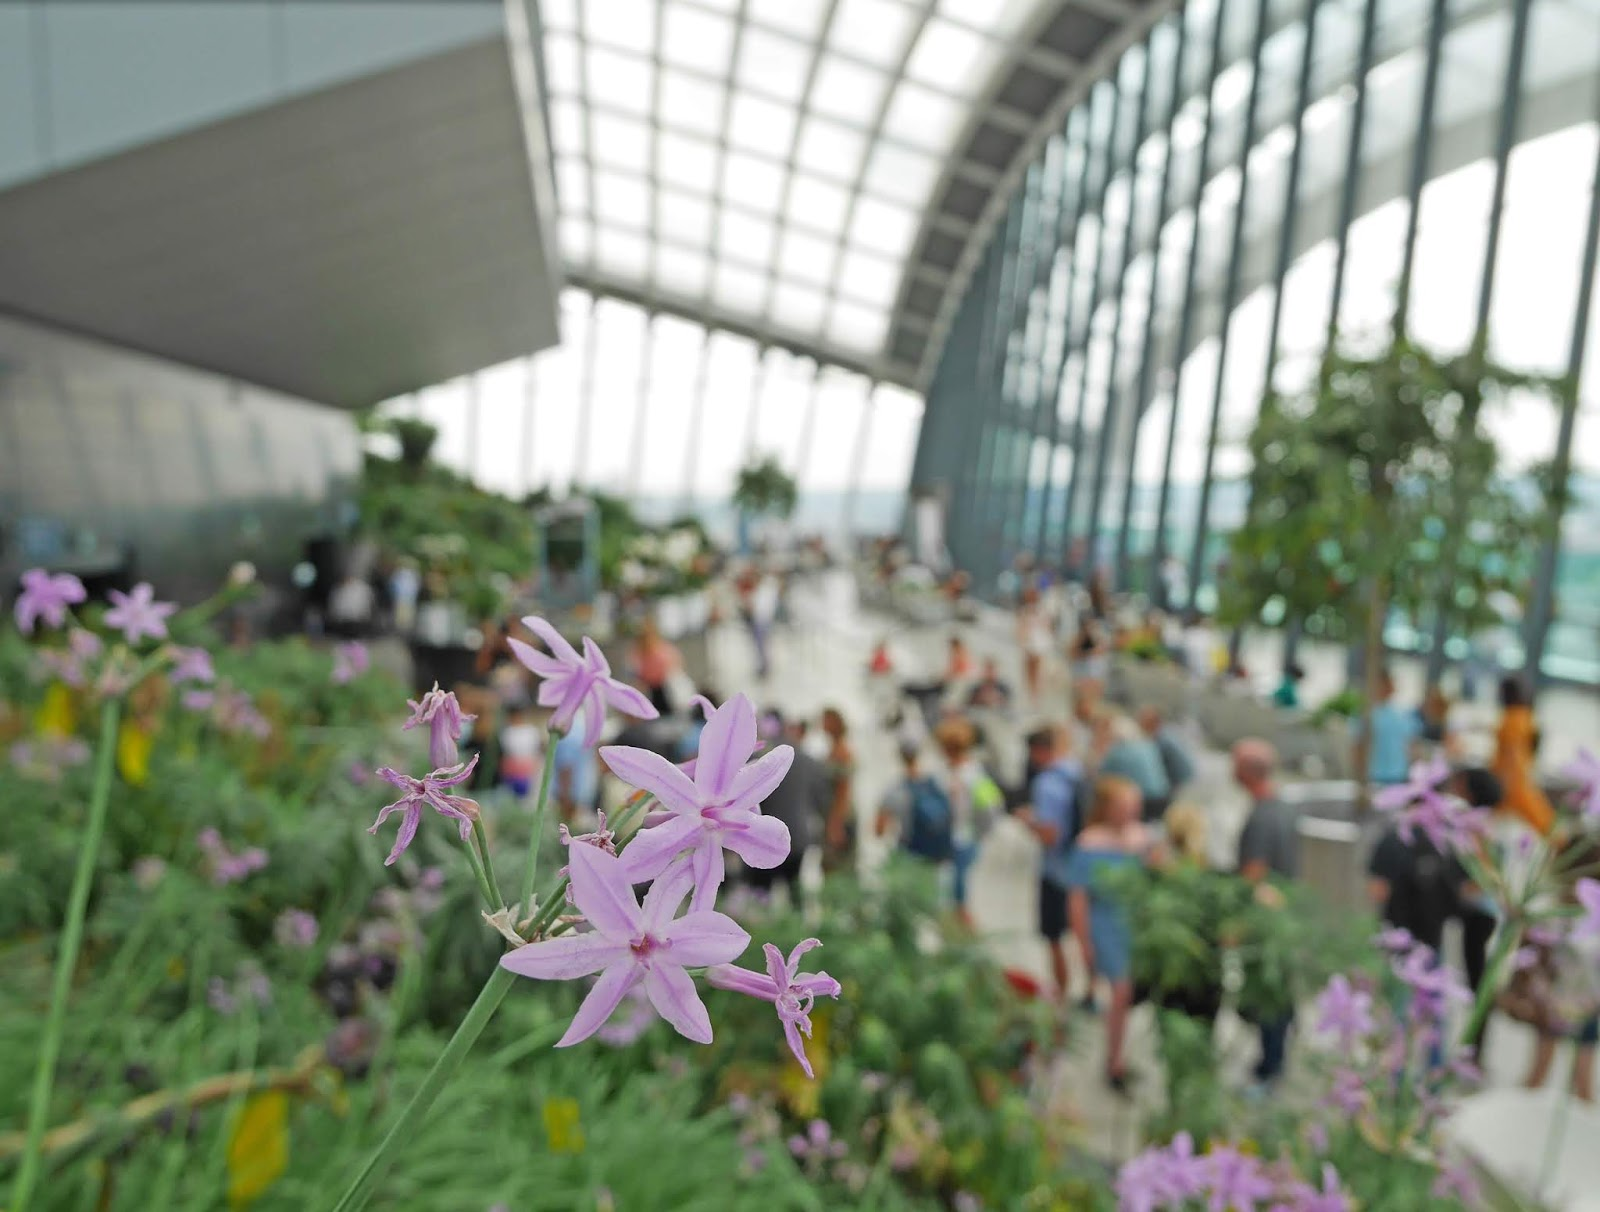 Flowers at the Sky Garden in London